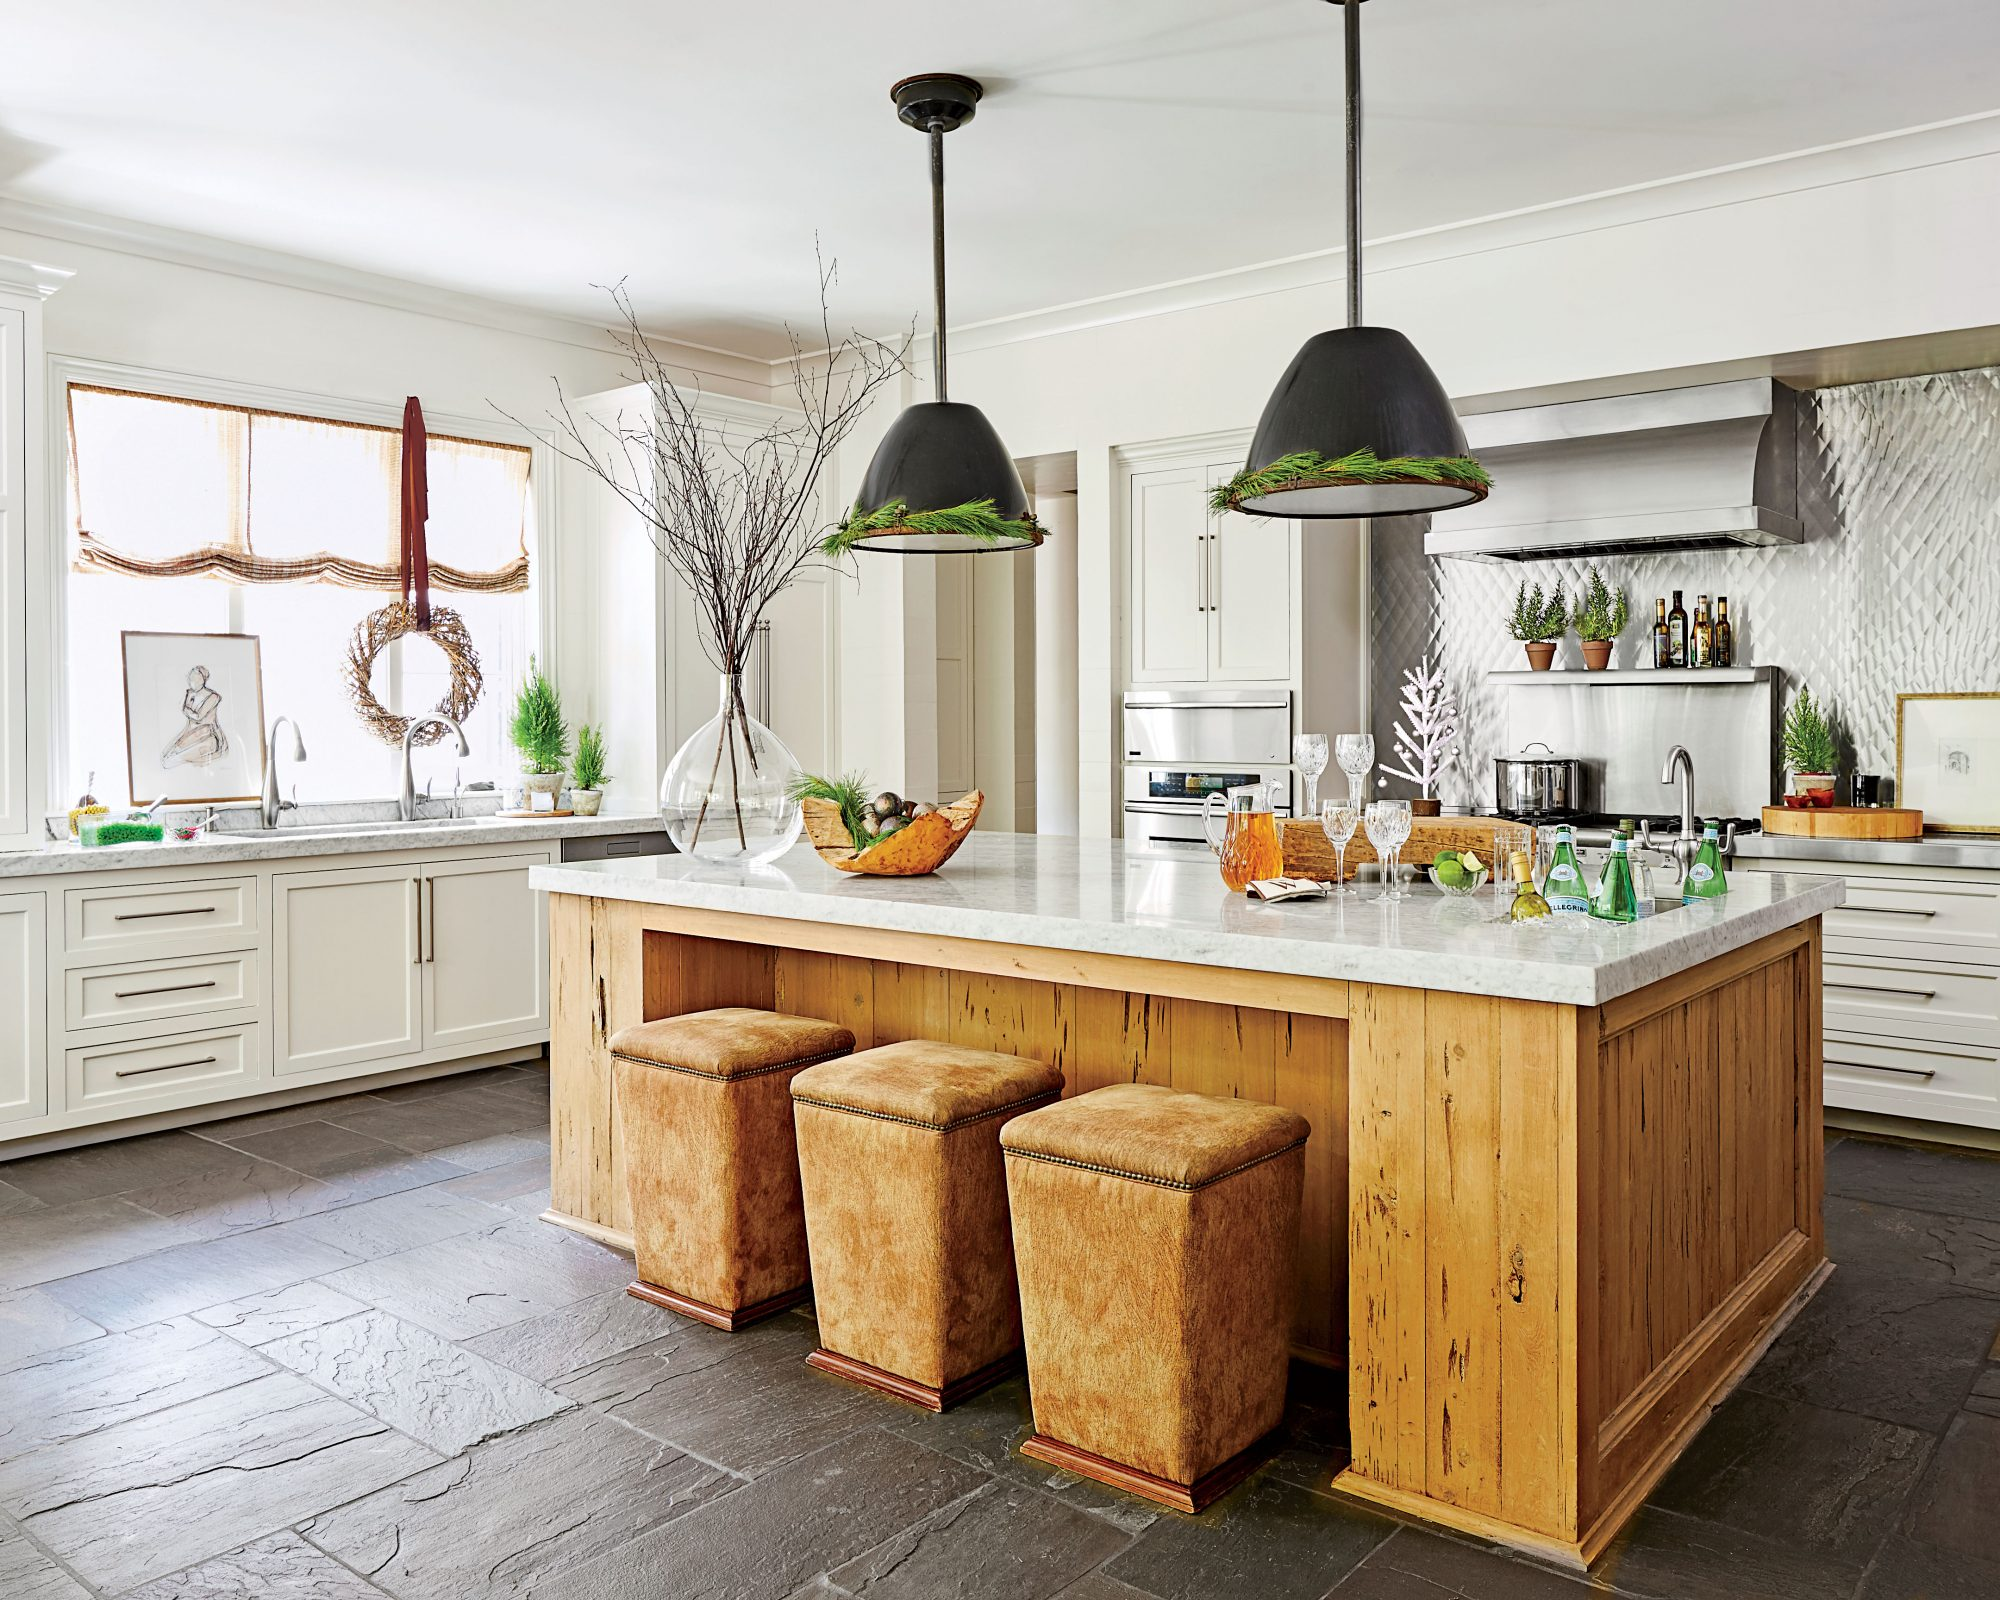 Christmas decorations and rustic wood island in Dana Wolter white kitchen